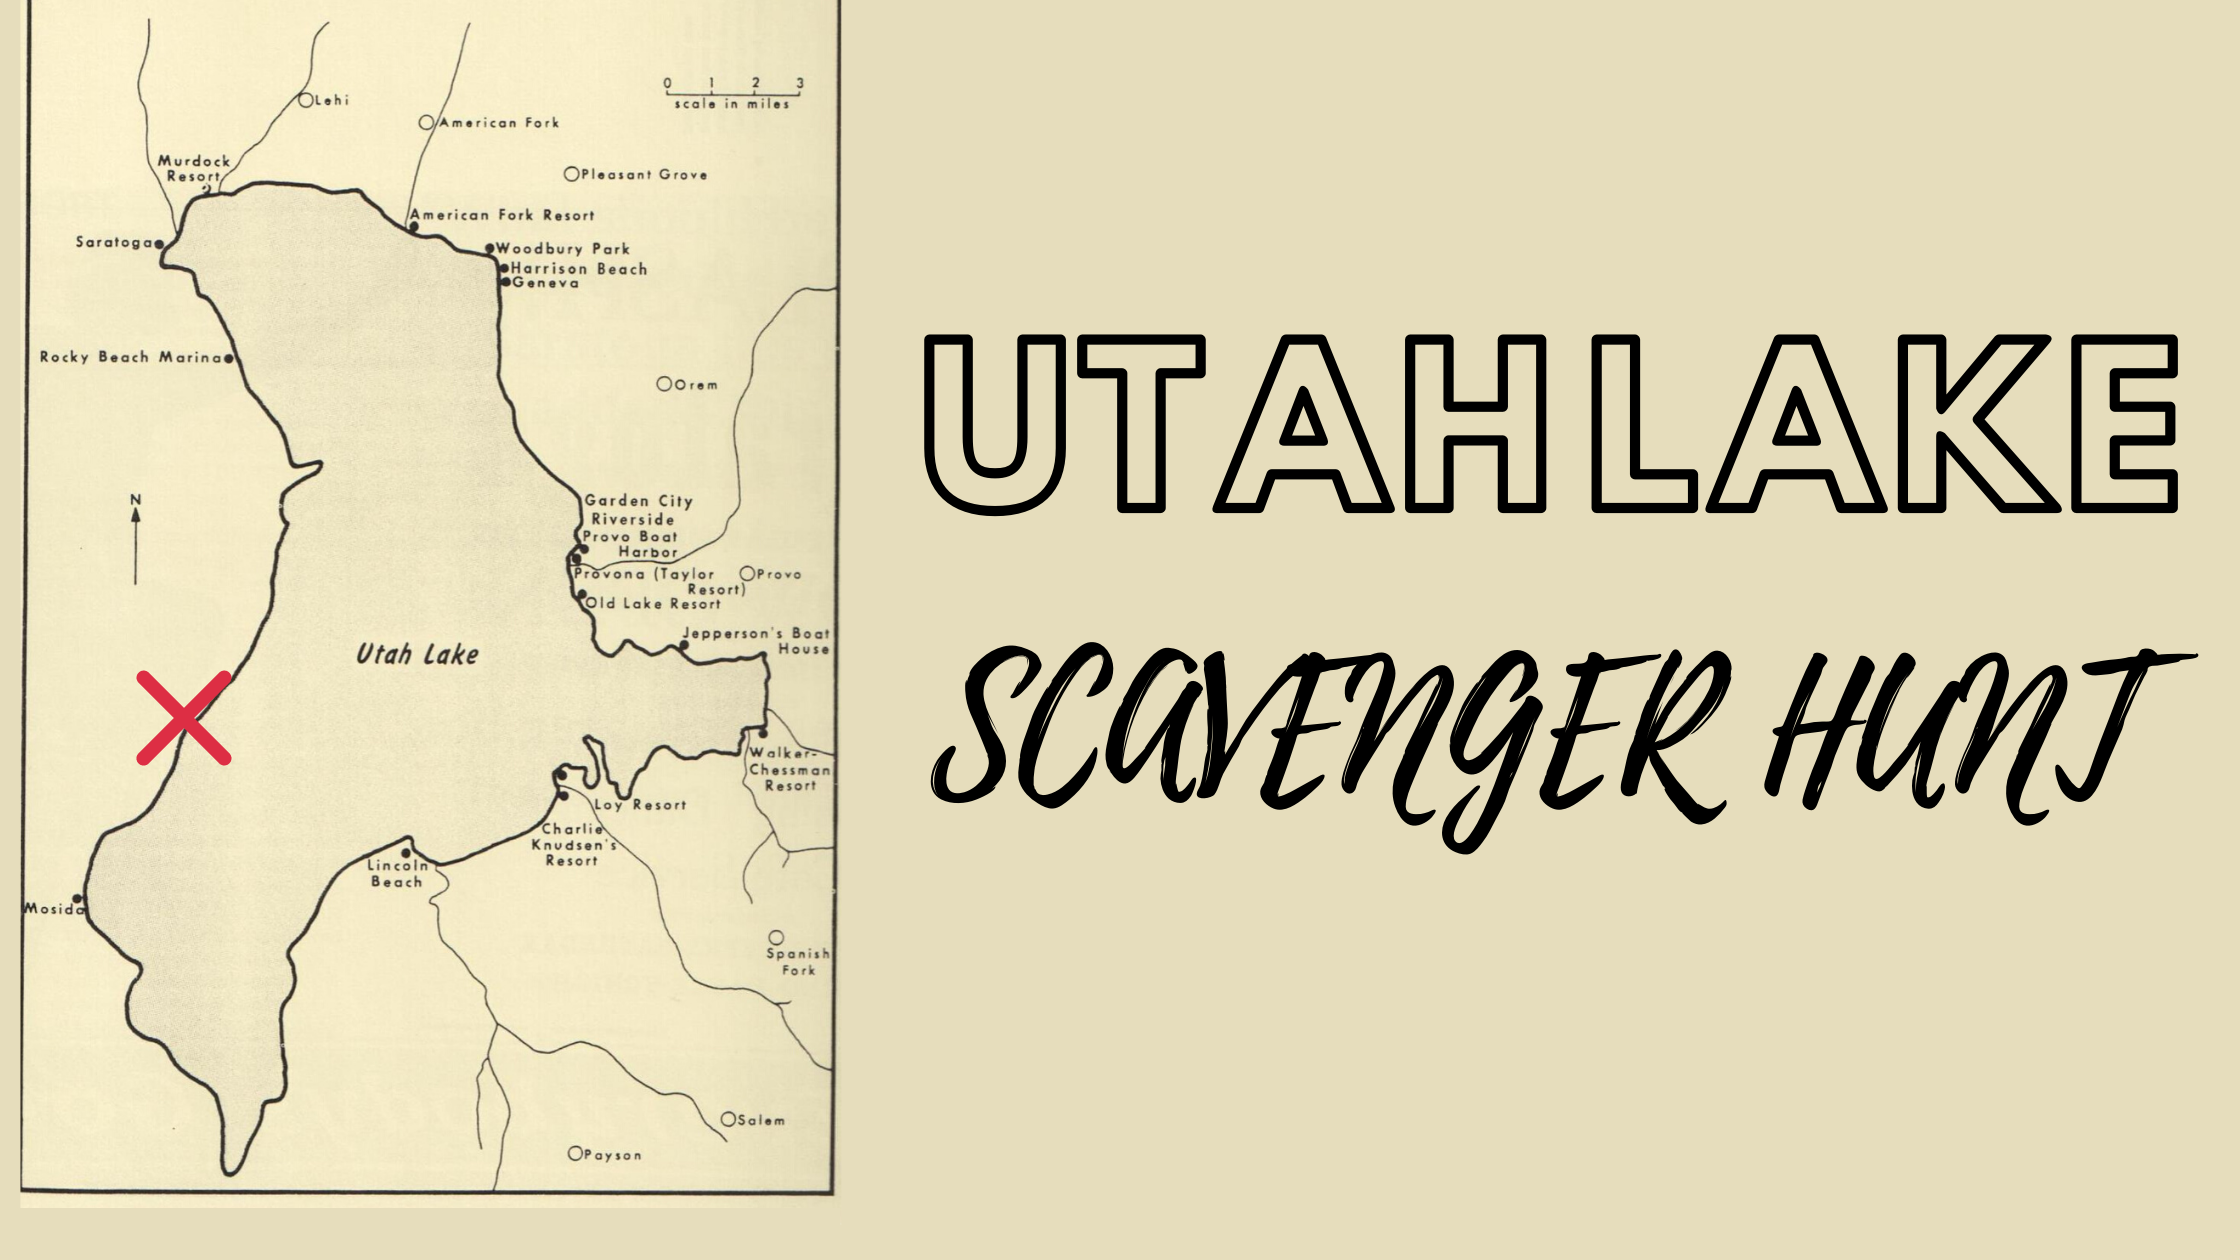 Utah Lake Scavenger Hunt